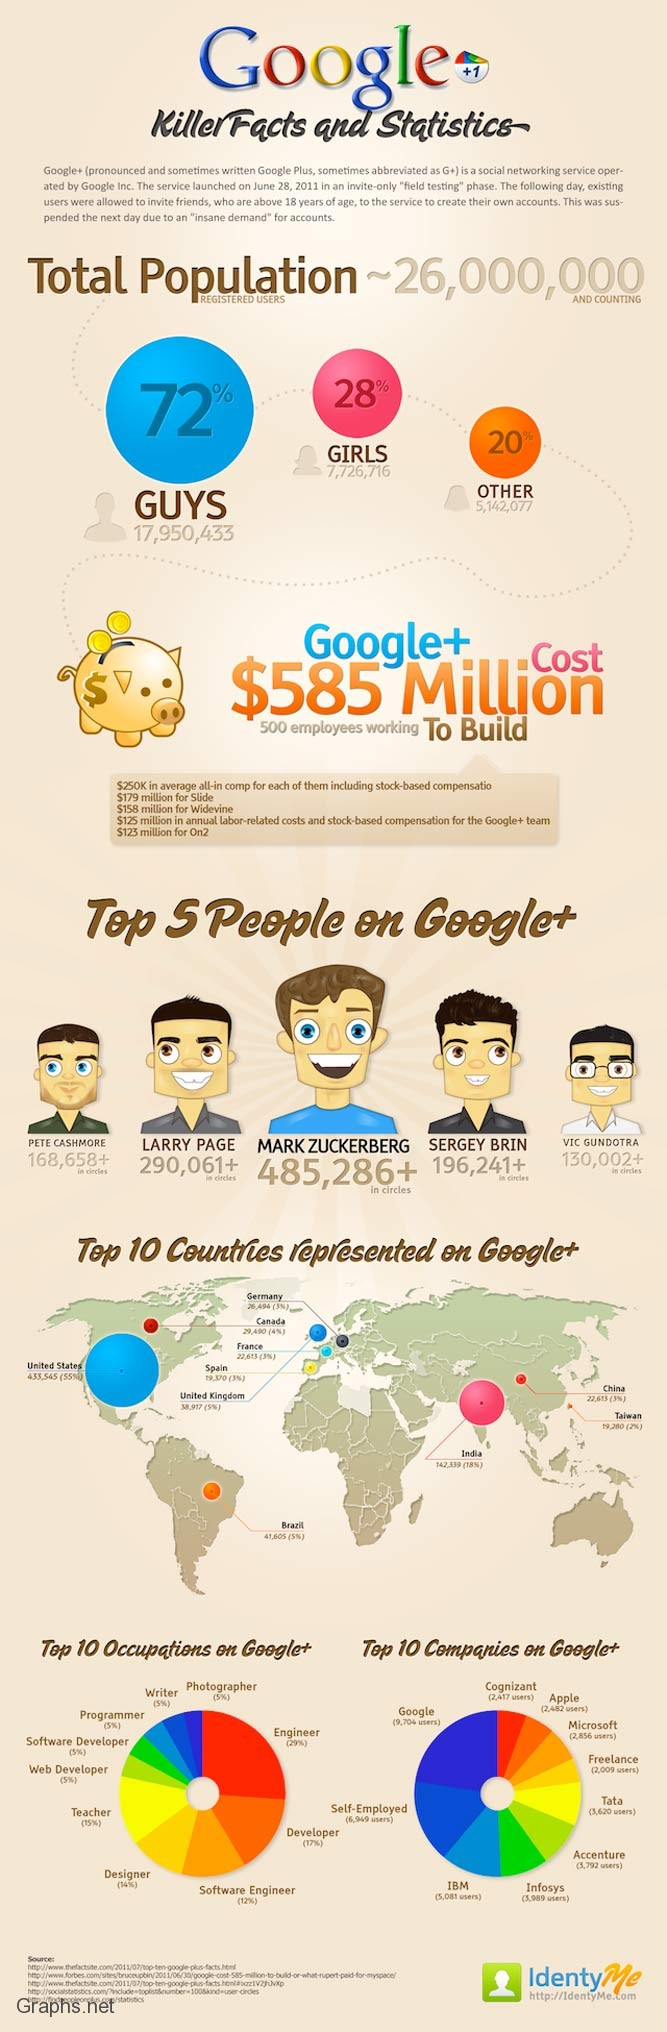 Top 5 Most Followed People on Google+